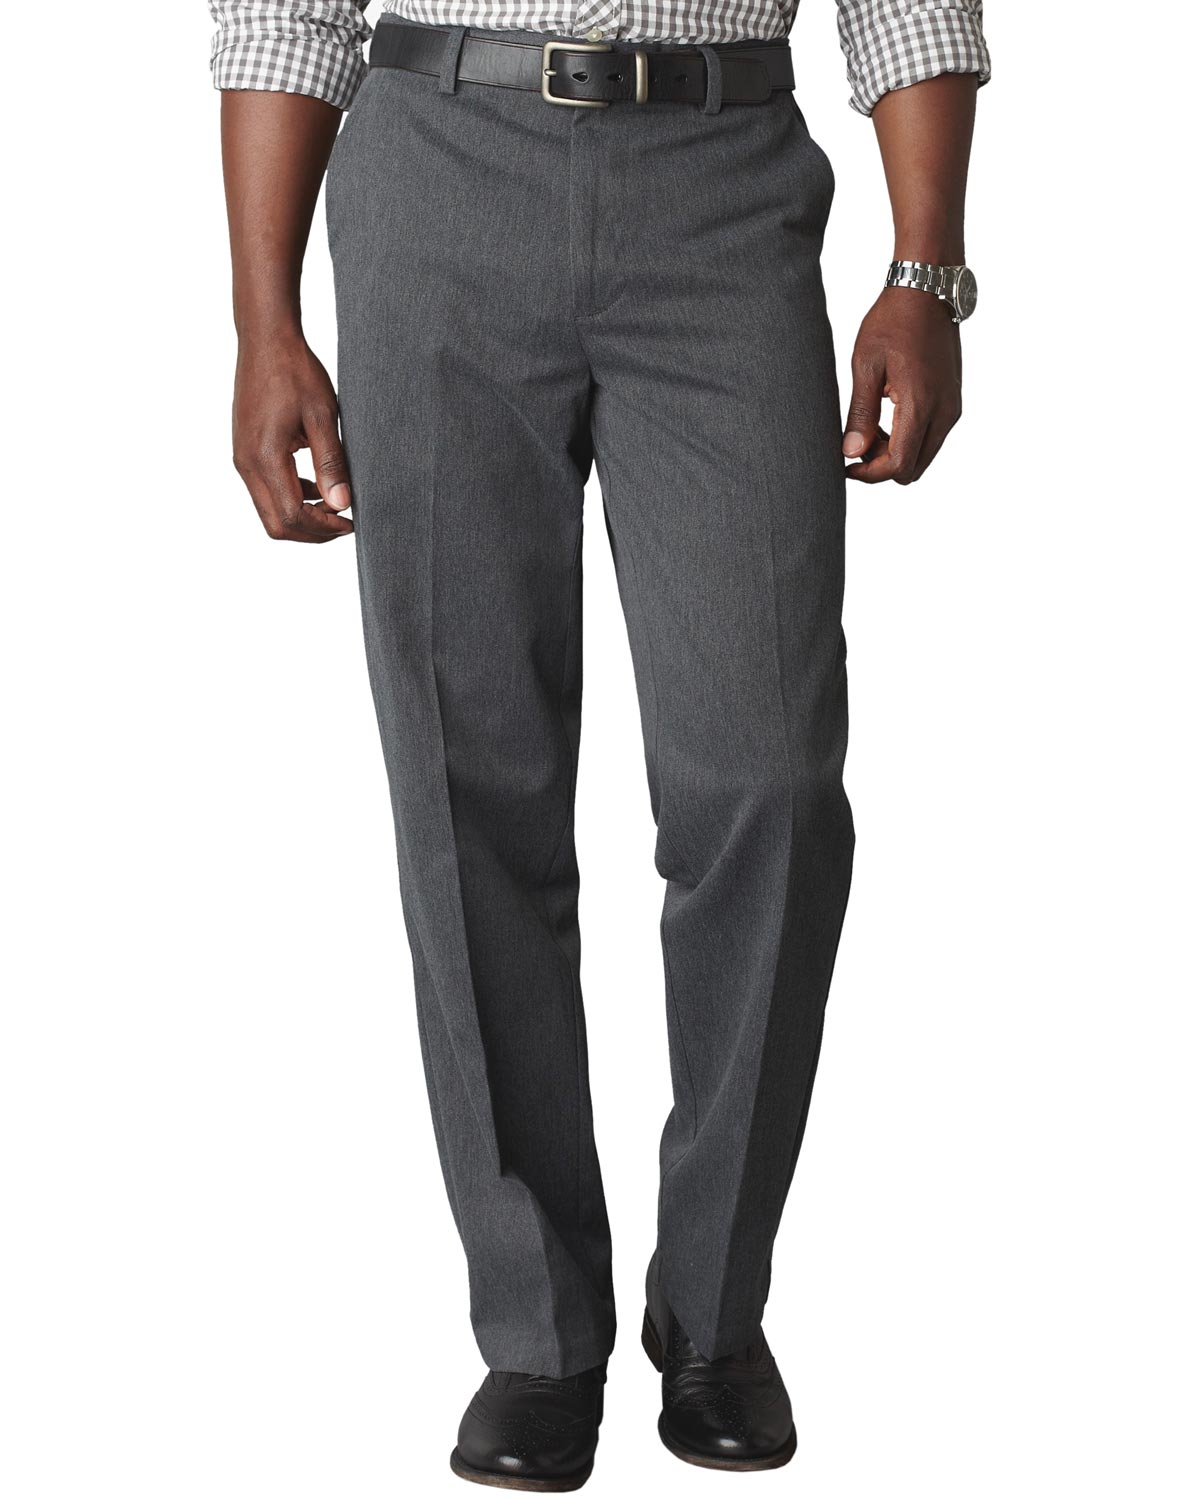 Dockers Classic Fit Signature Flat Front Chinos Pants Charcoal 34 x 30 by Dockers